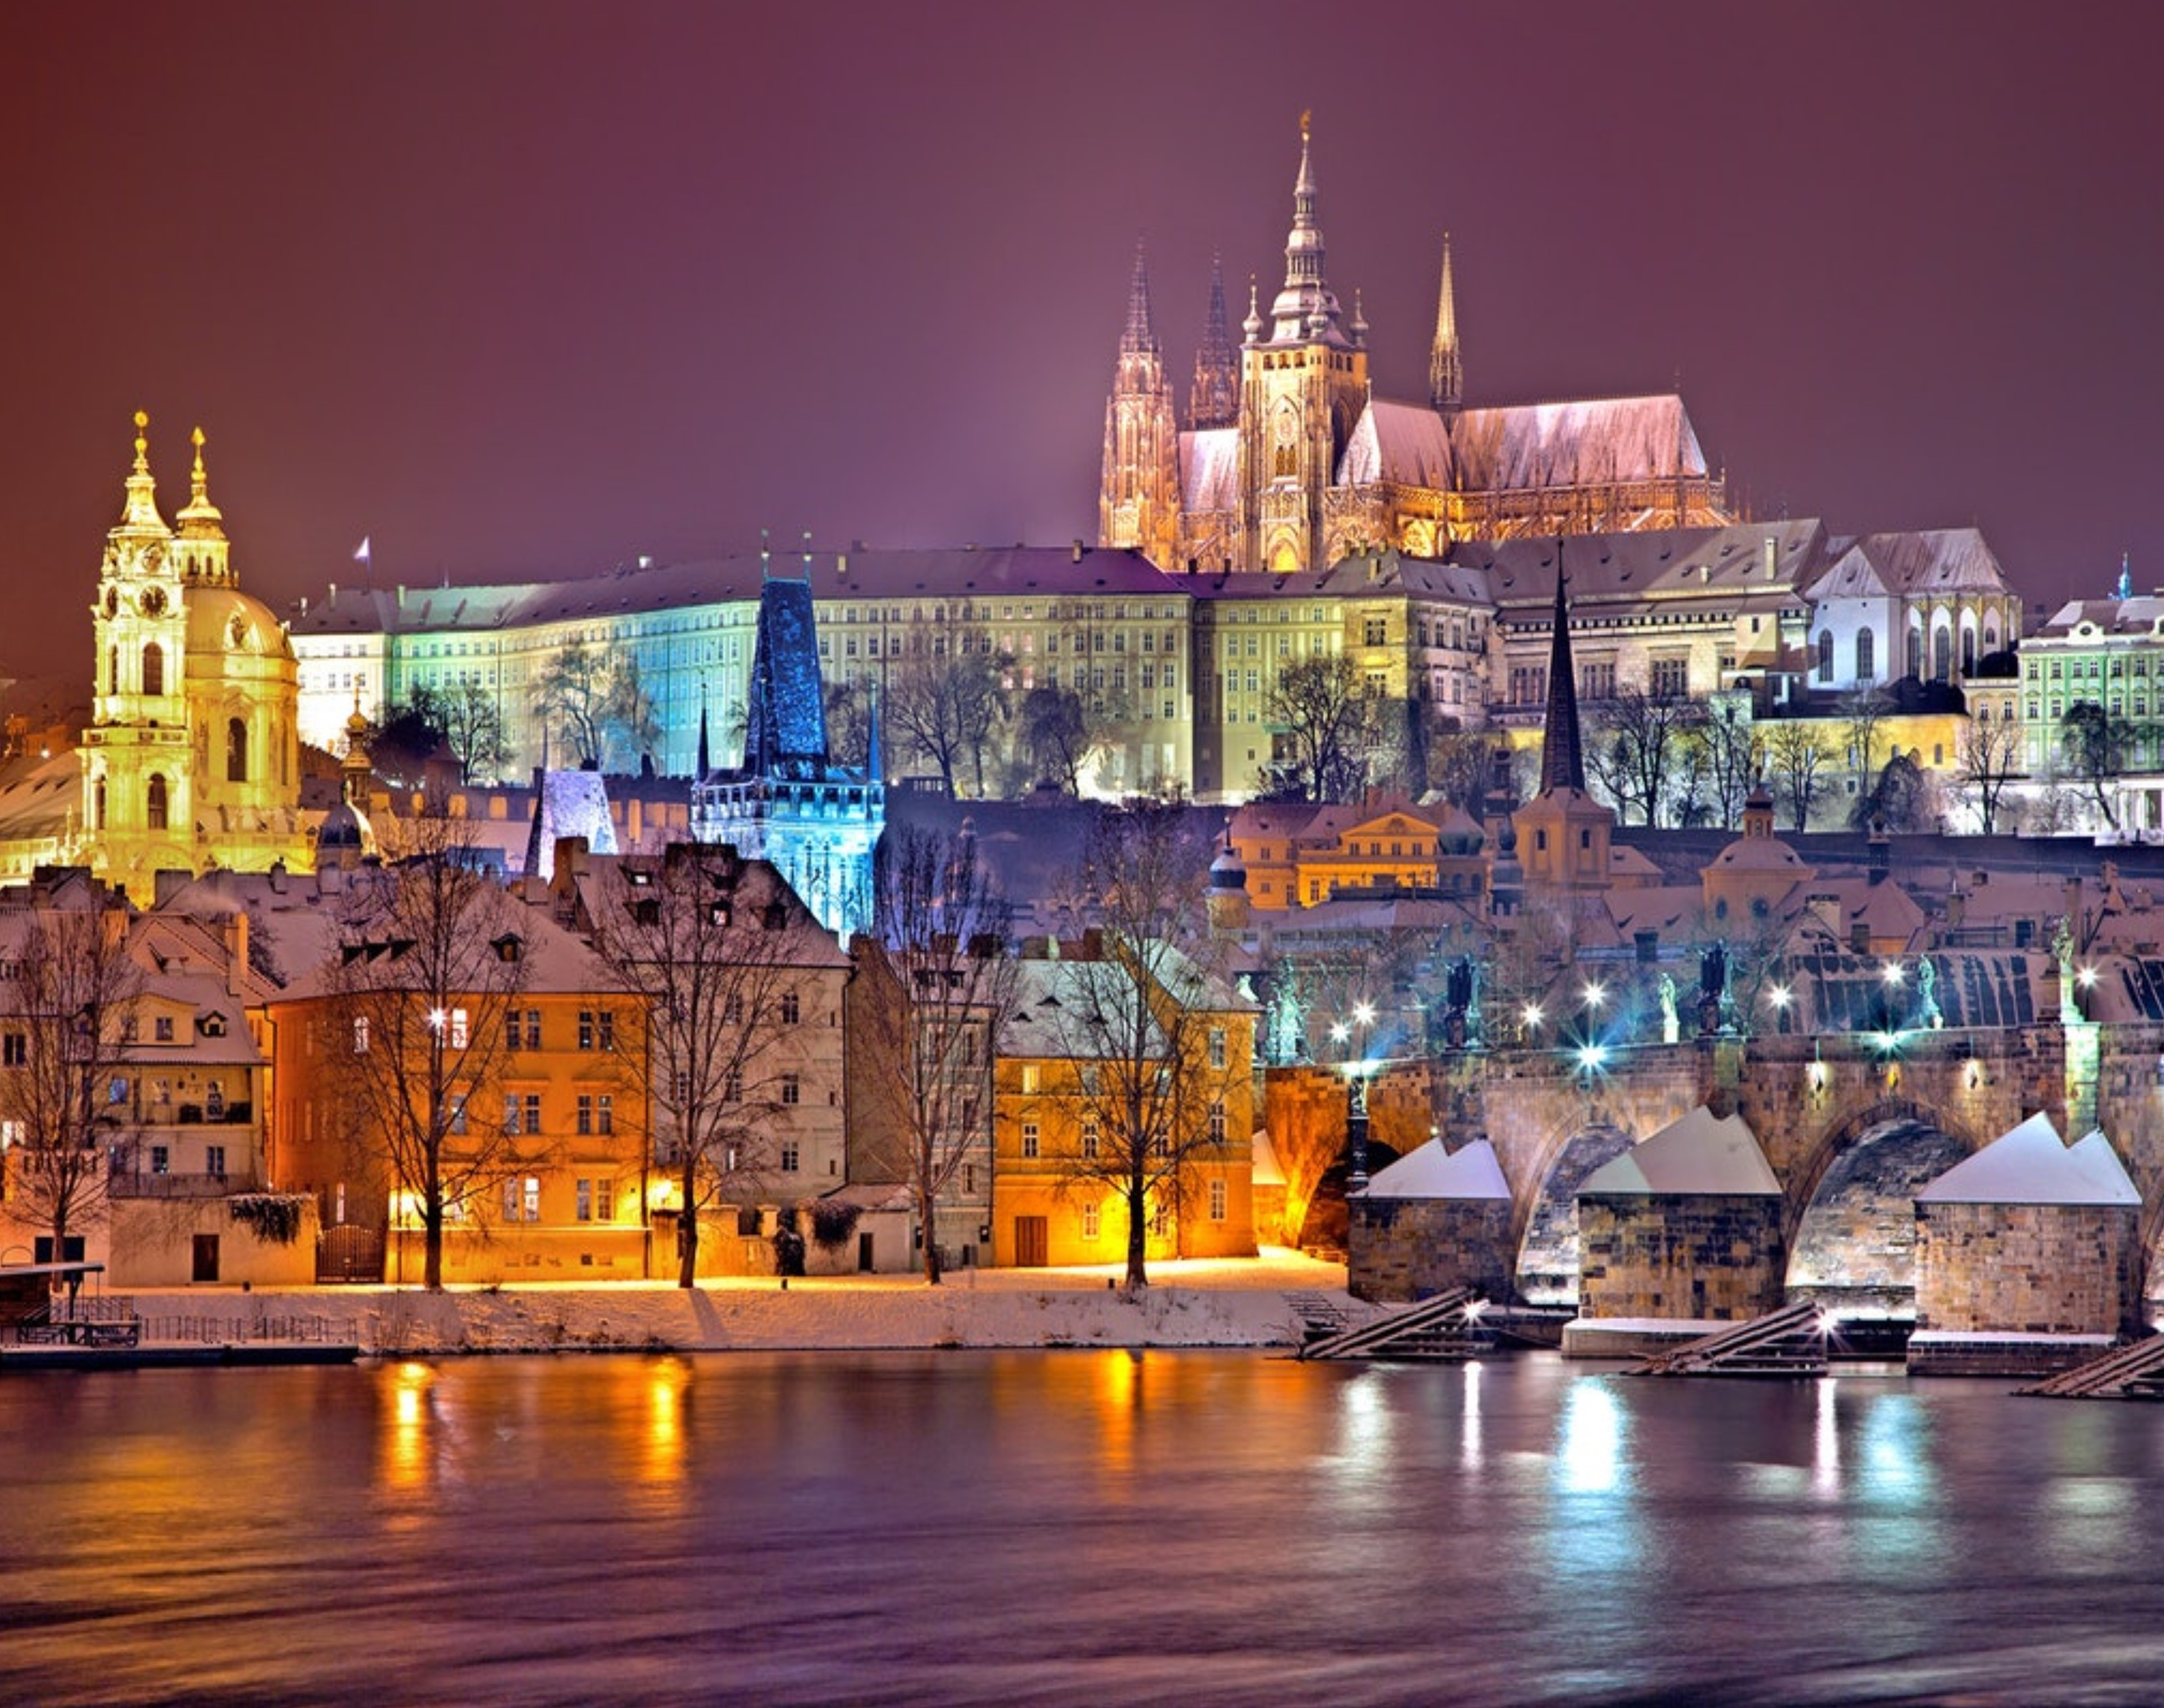 Travel Pocket Guide - Most Romantic Cities in the World